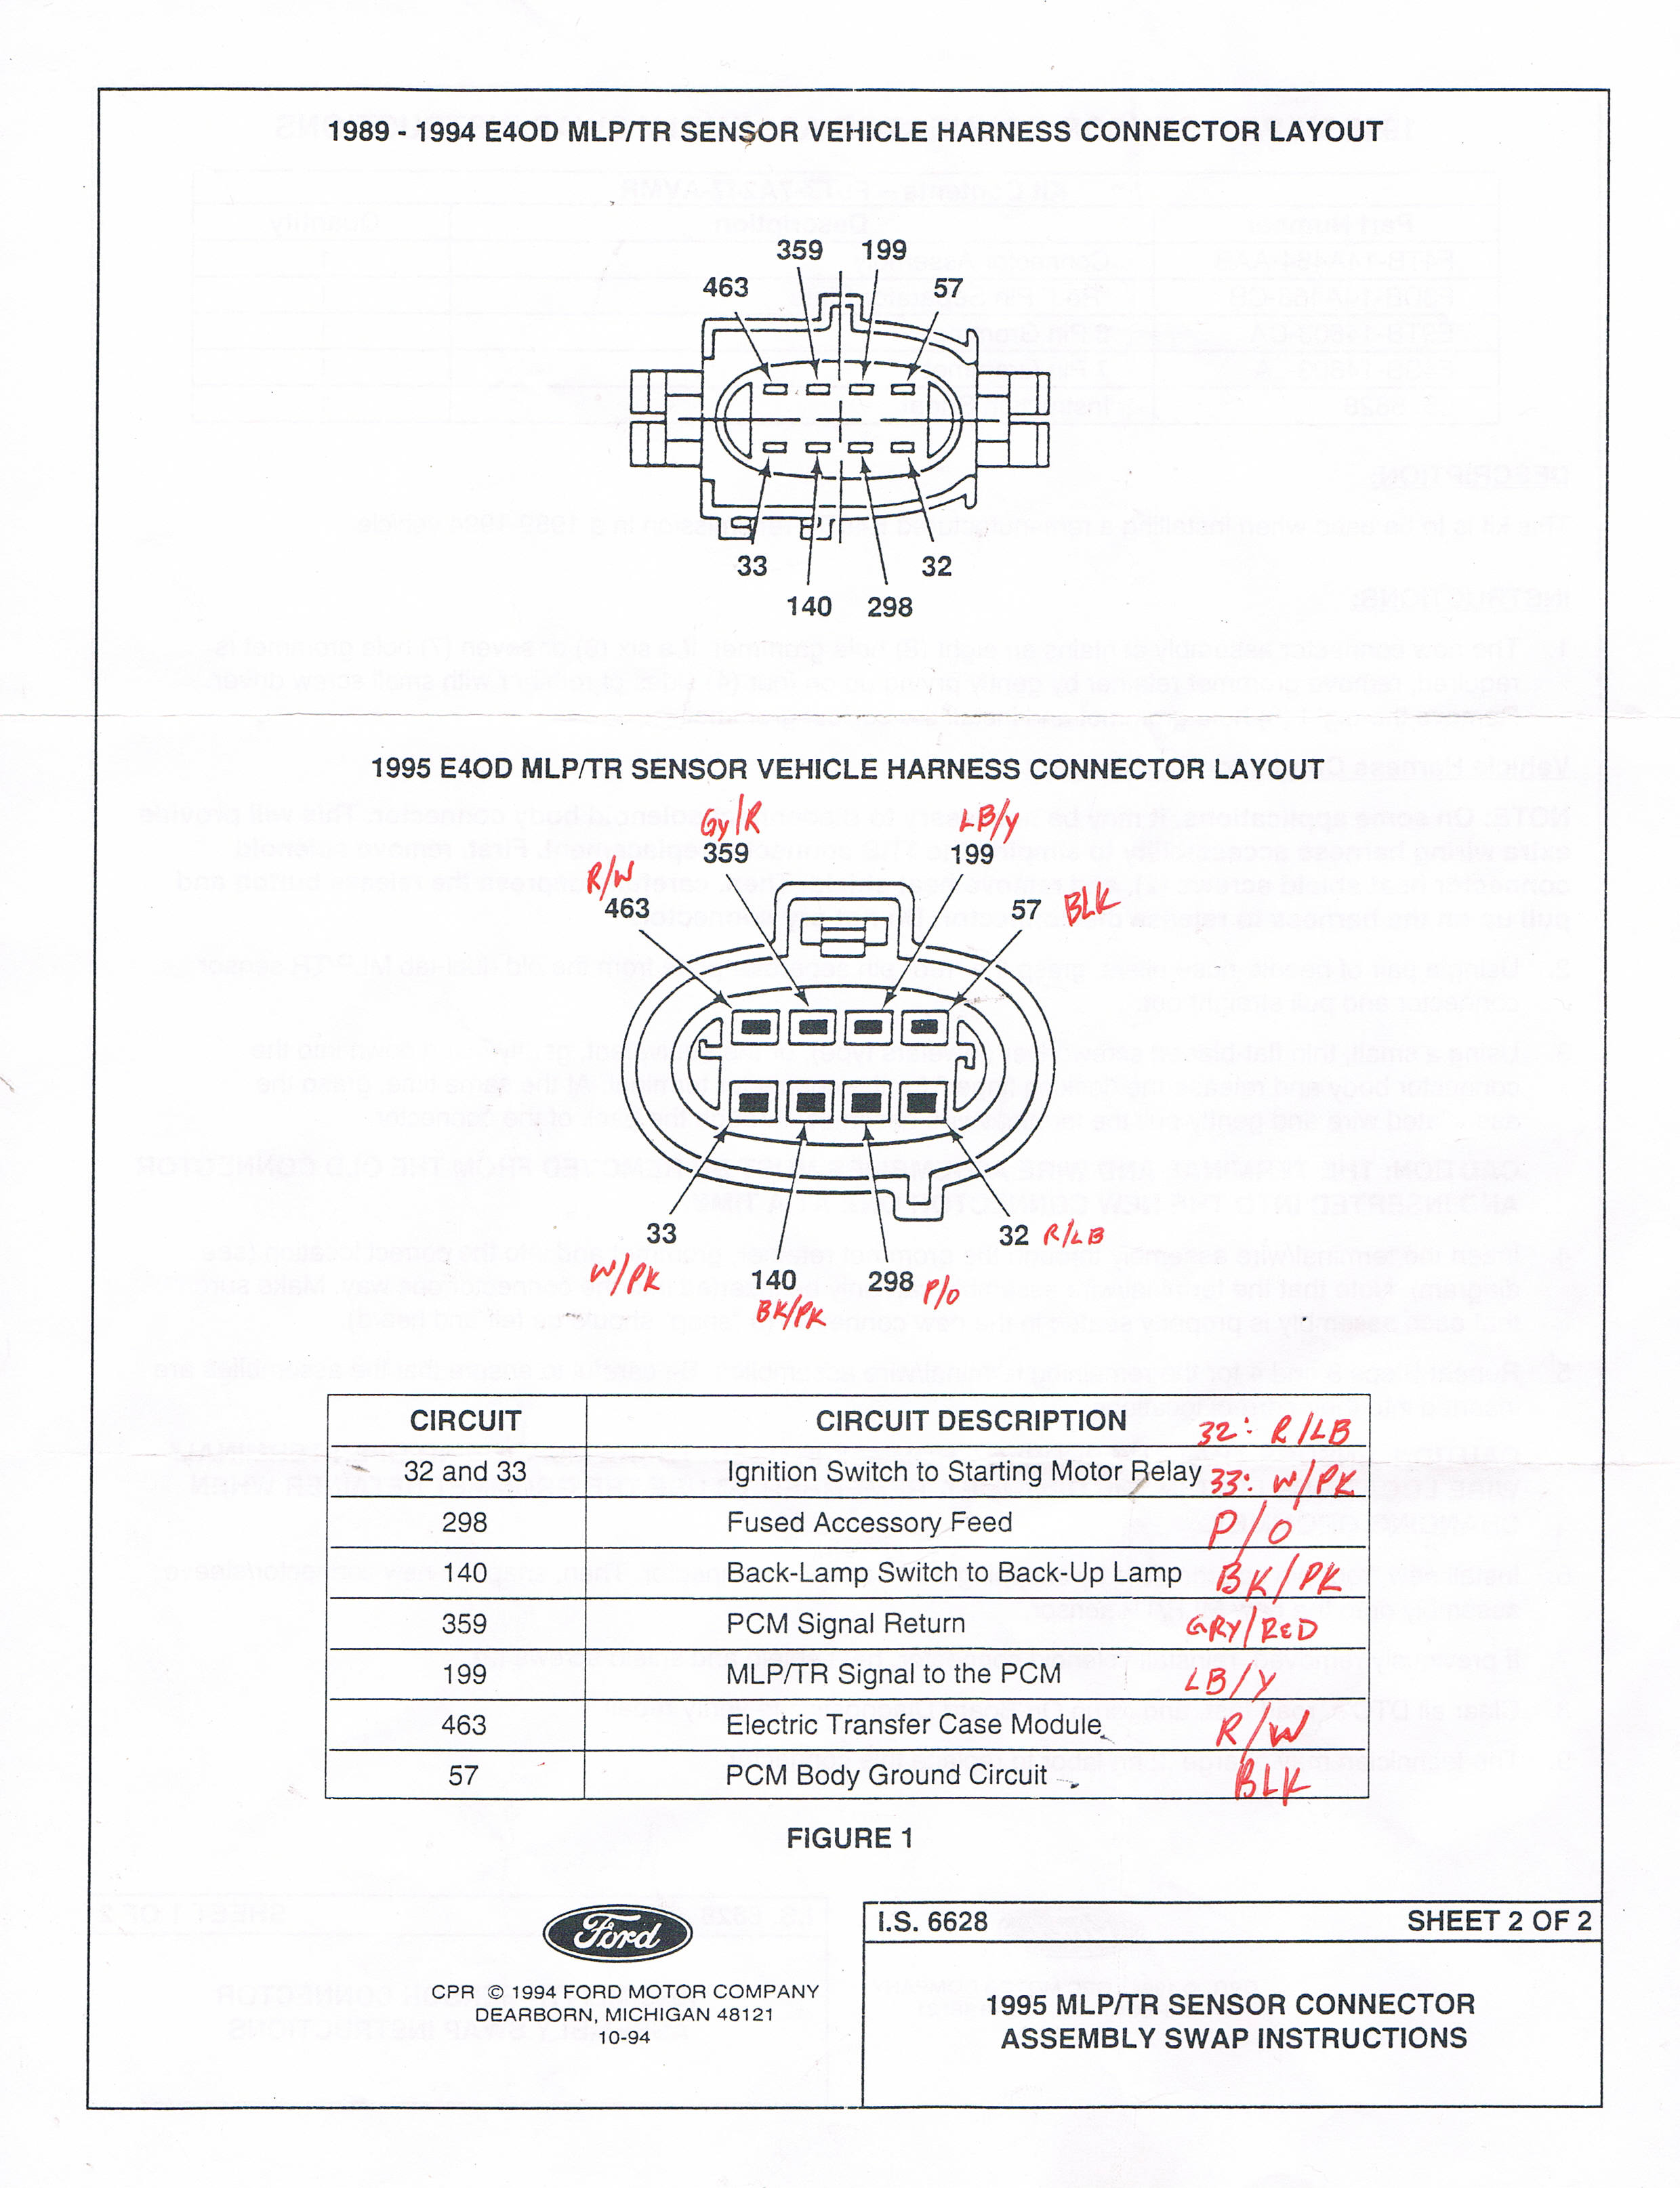 January 2013 The Transletter 89 Mitsubishi Montero Wiring Diagram Ccf12192012 00000 Connector Wrong Wire Location